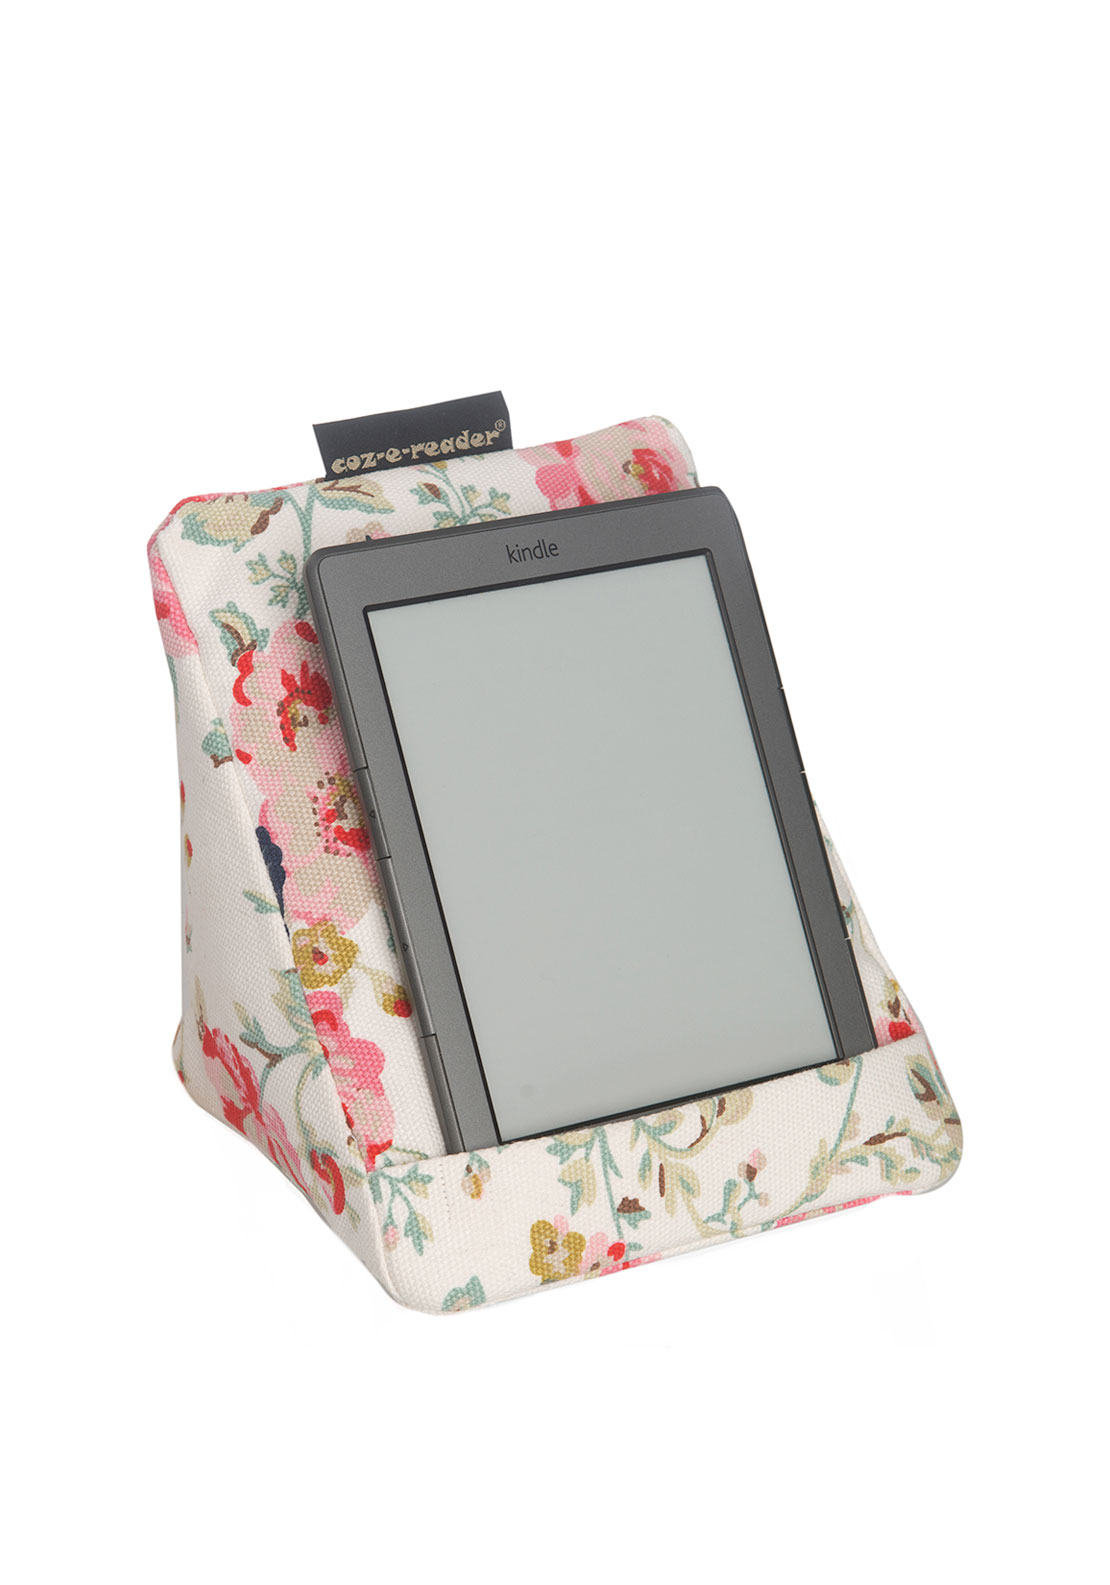 Coz-e-reader floral e-reader Cushion, Cream